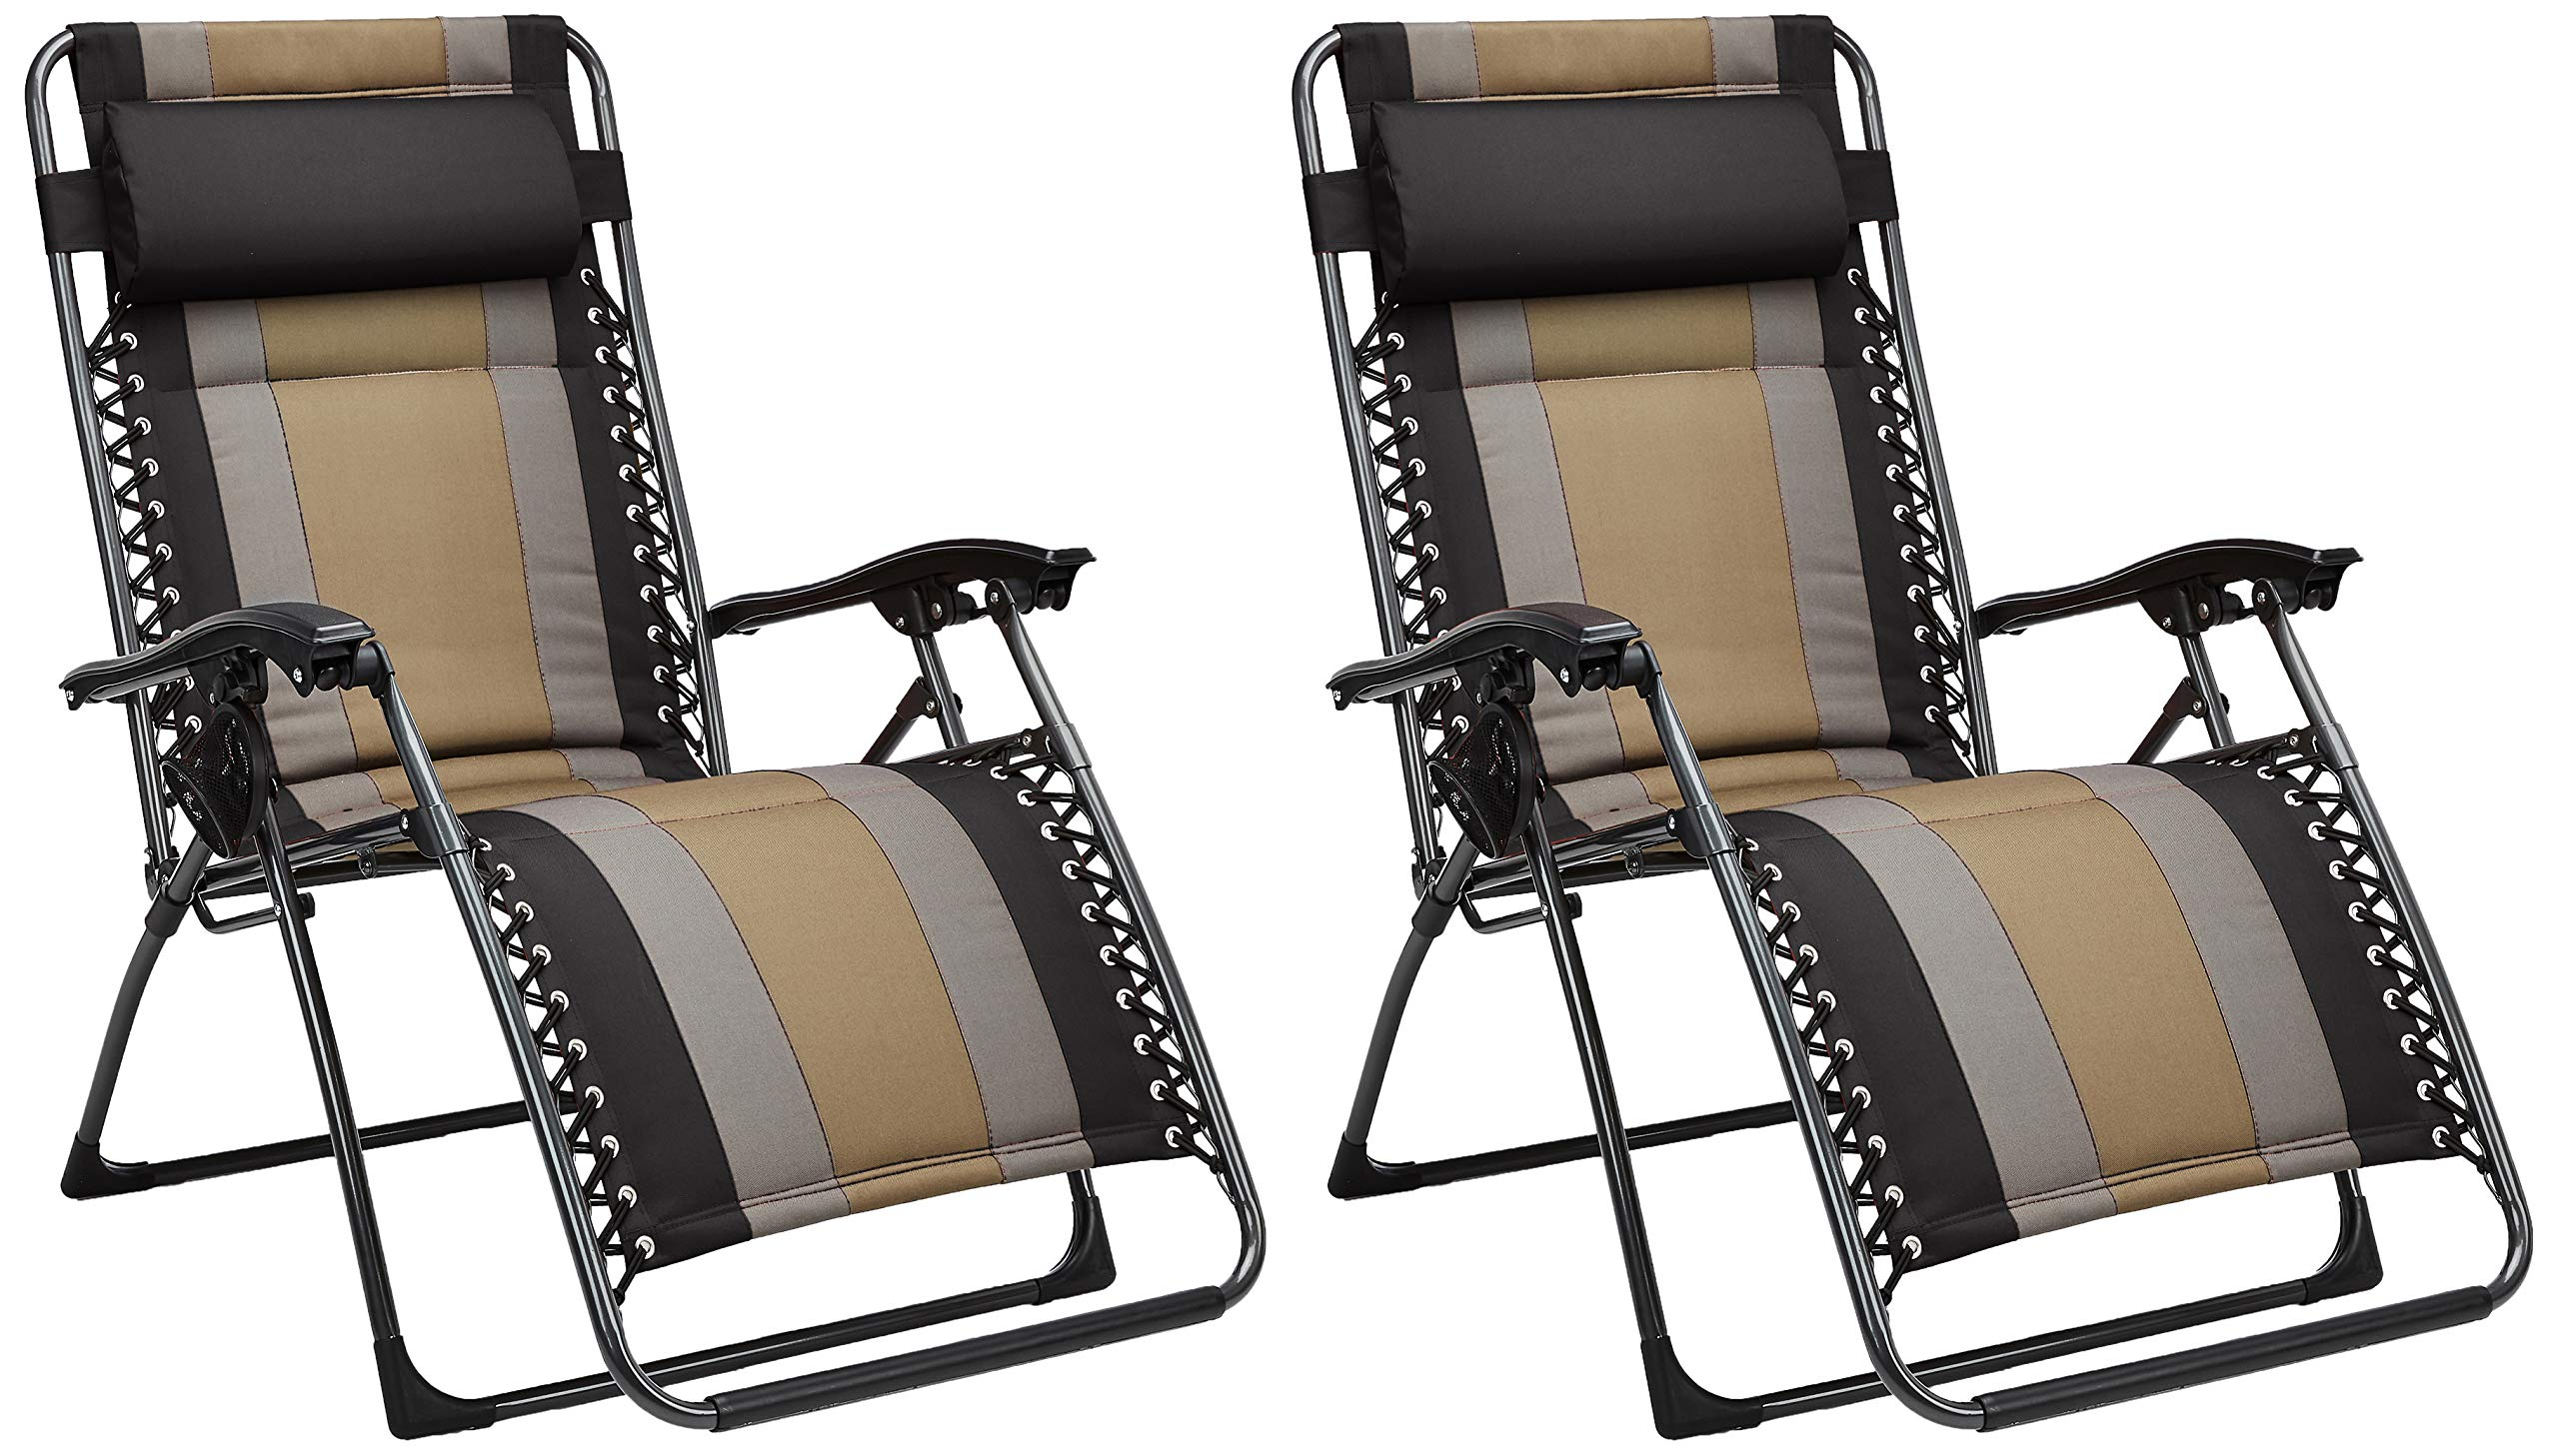 AmazonBasics Padded Zero Gravity Chair- Black, 2 Pack by AmazonBasics